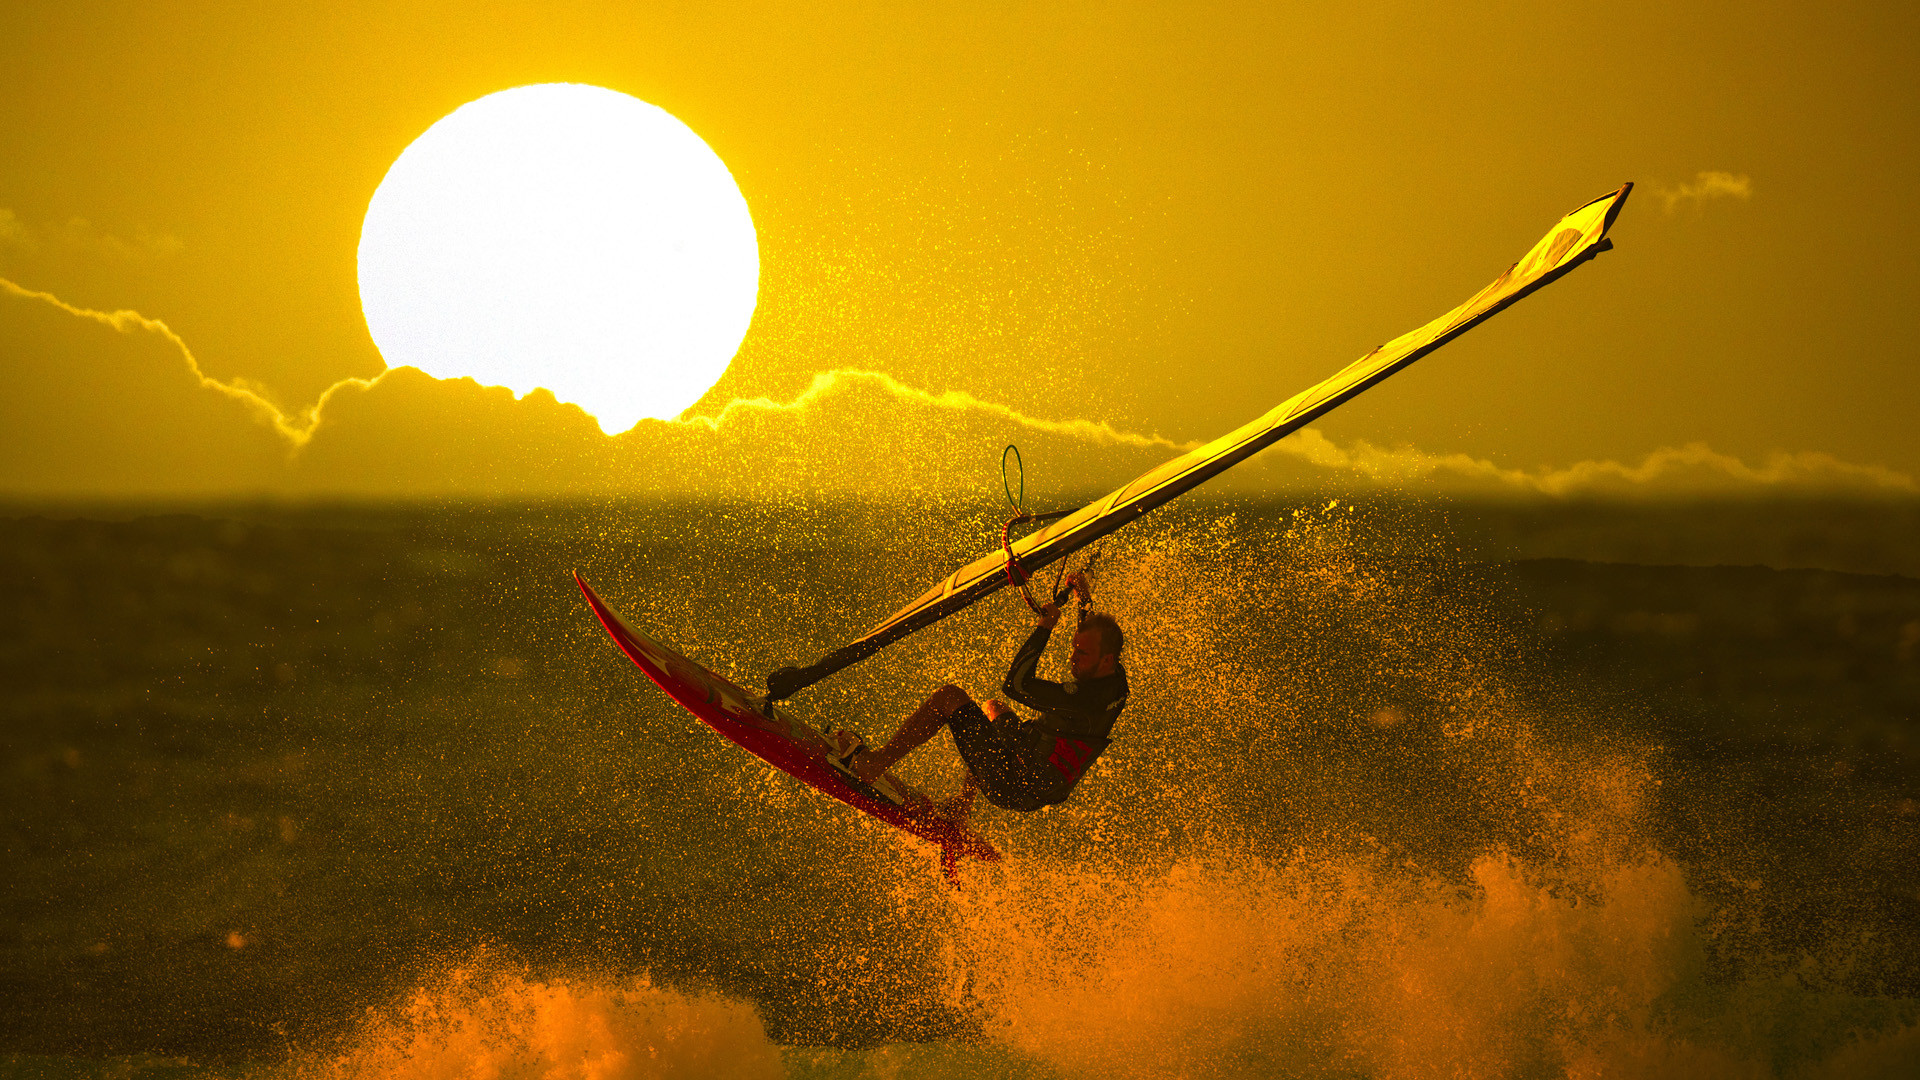 Wallpaper Hd Surfer Girl Windsurfing Sport Sonne Sun Sunset Sonnenuntergang